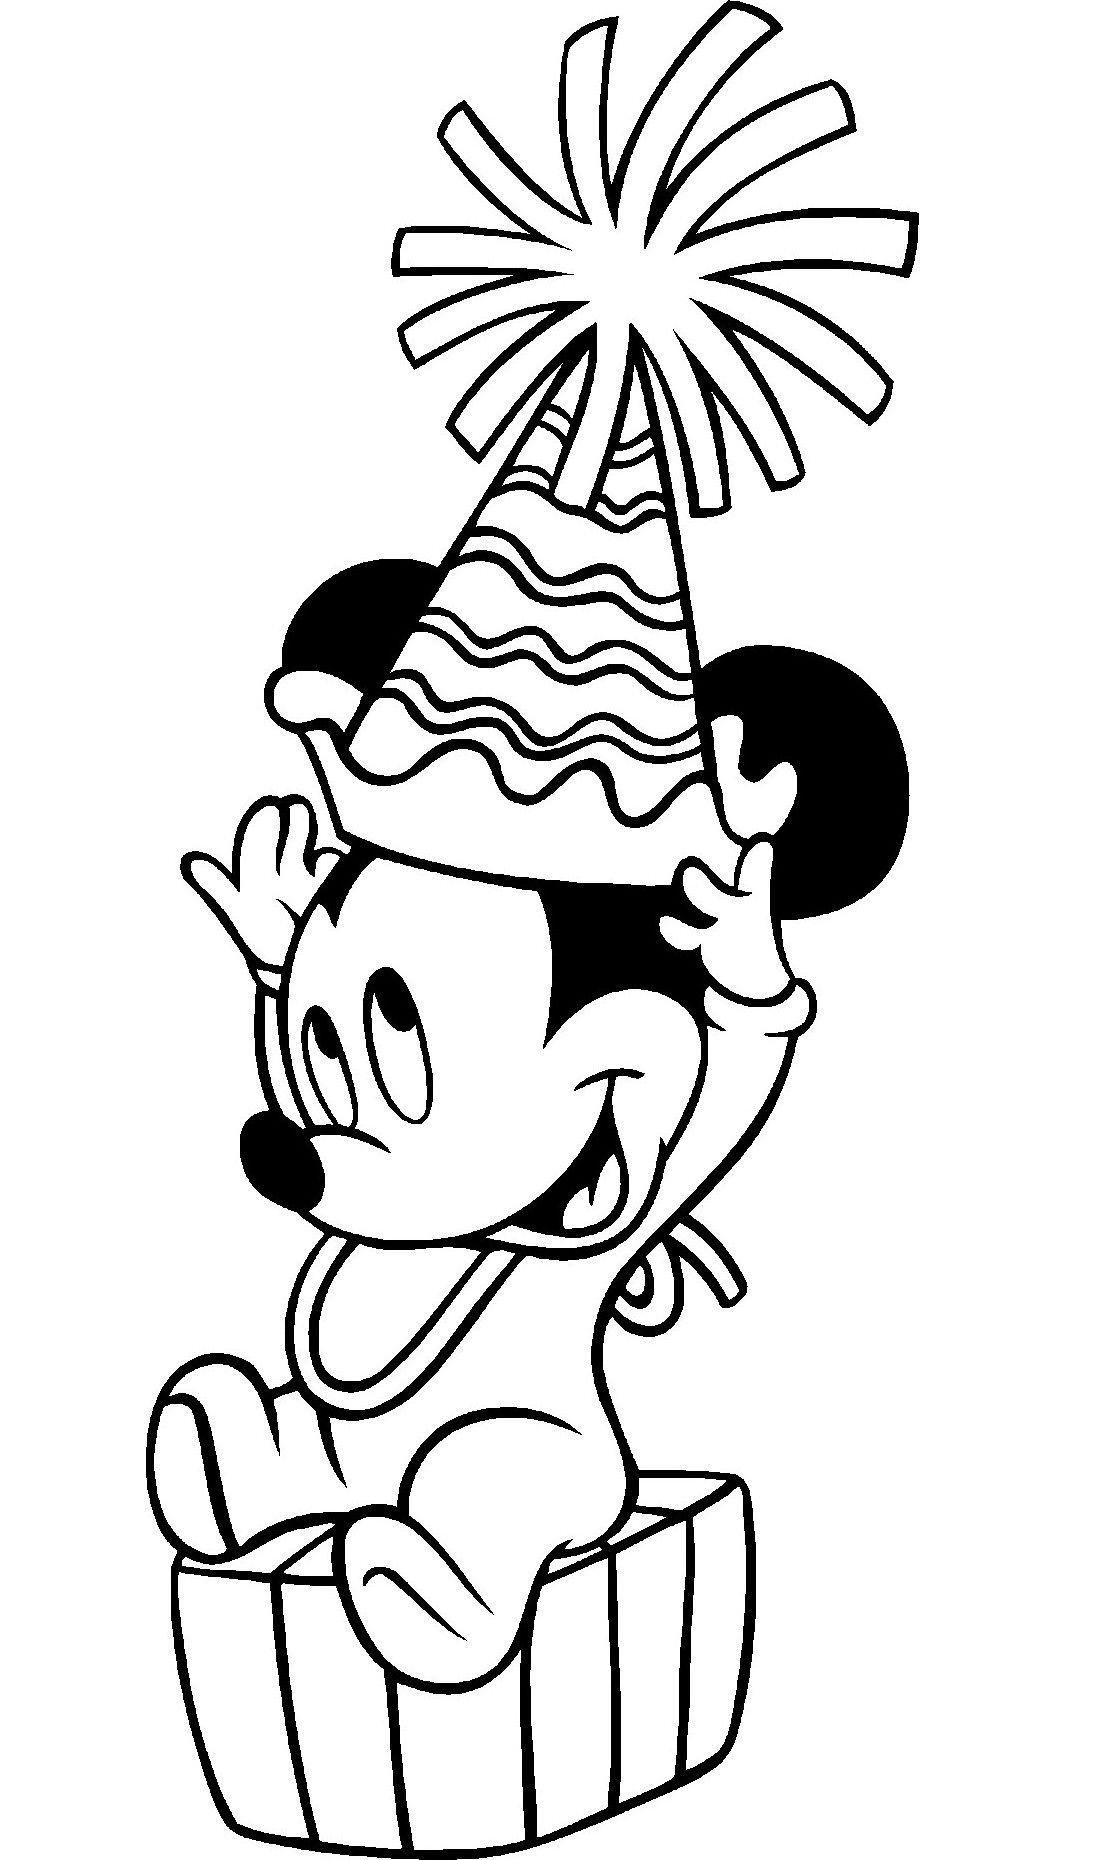 Free Printable Mickey Mouse Coloring Pages For Kids Mickey Mouse